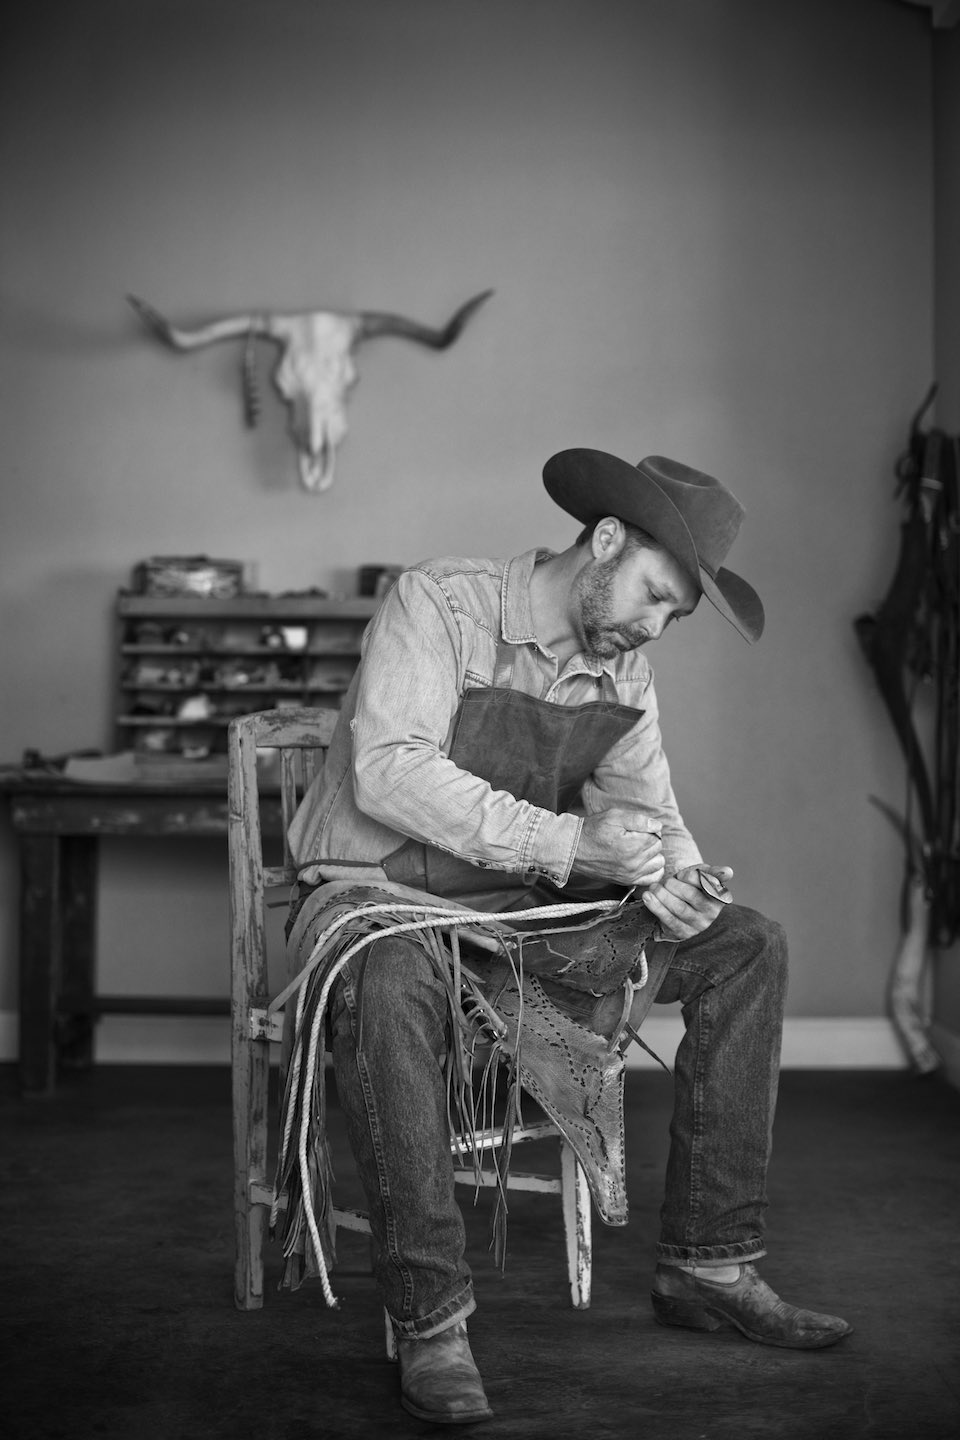 Leather worker sitting on a wood chair working on a piece, shot in B&W.